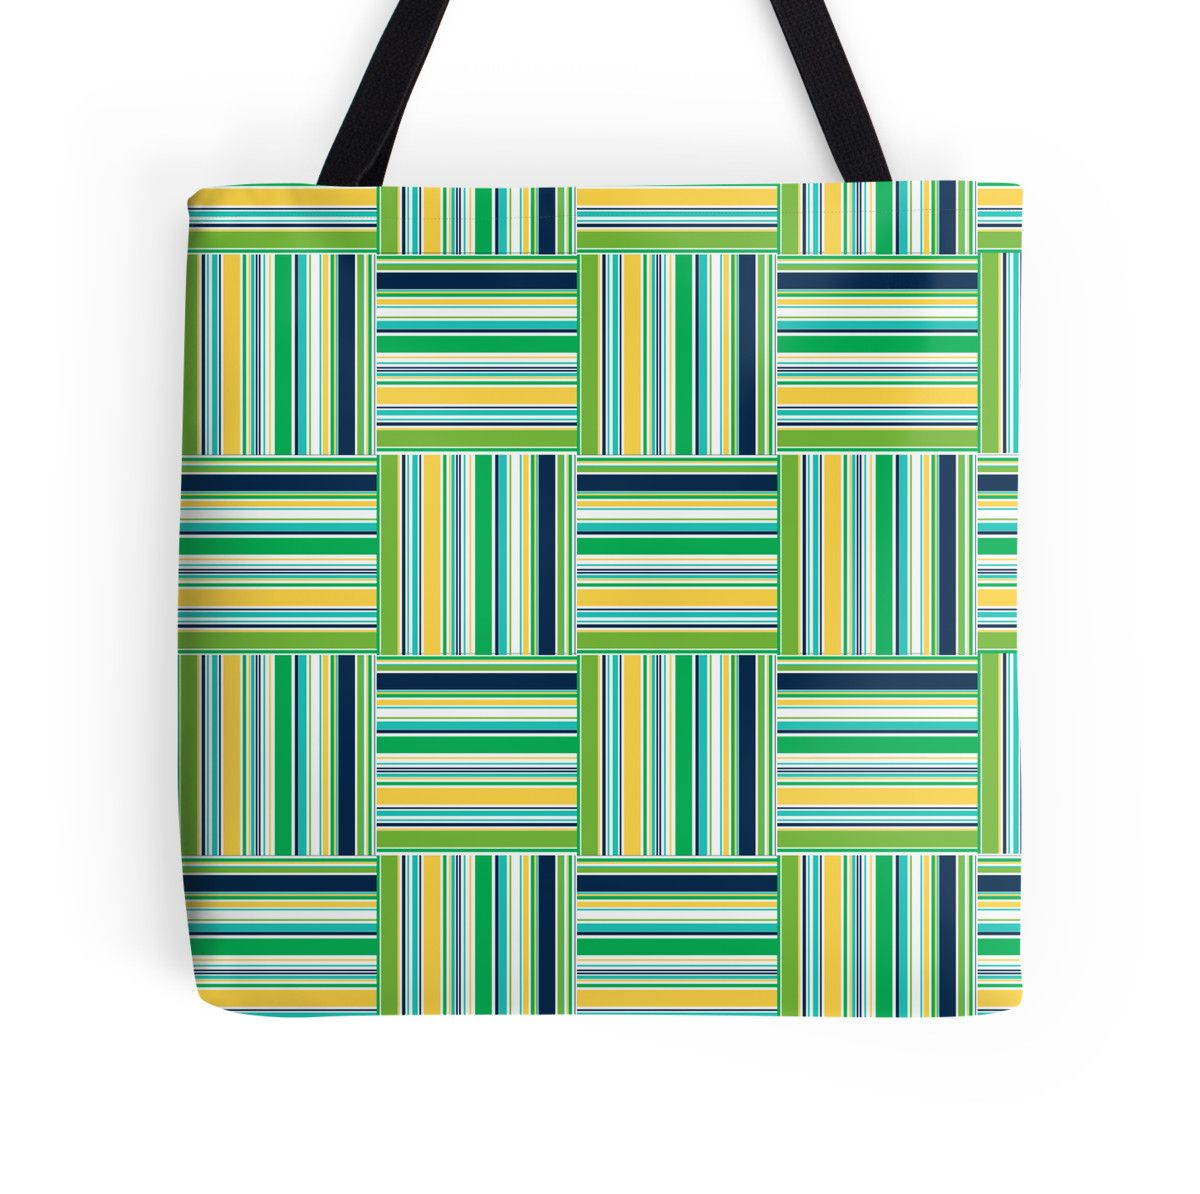 Grass Plaid small tote Available at www.redbubble.com  http://www.redbubble.com/people/crycepaul/works/11945014-grass-plaid?p=tote-bag